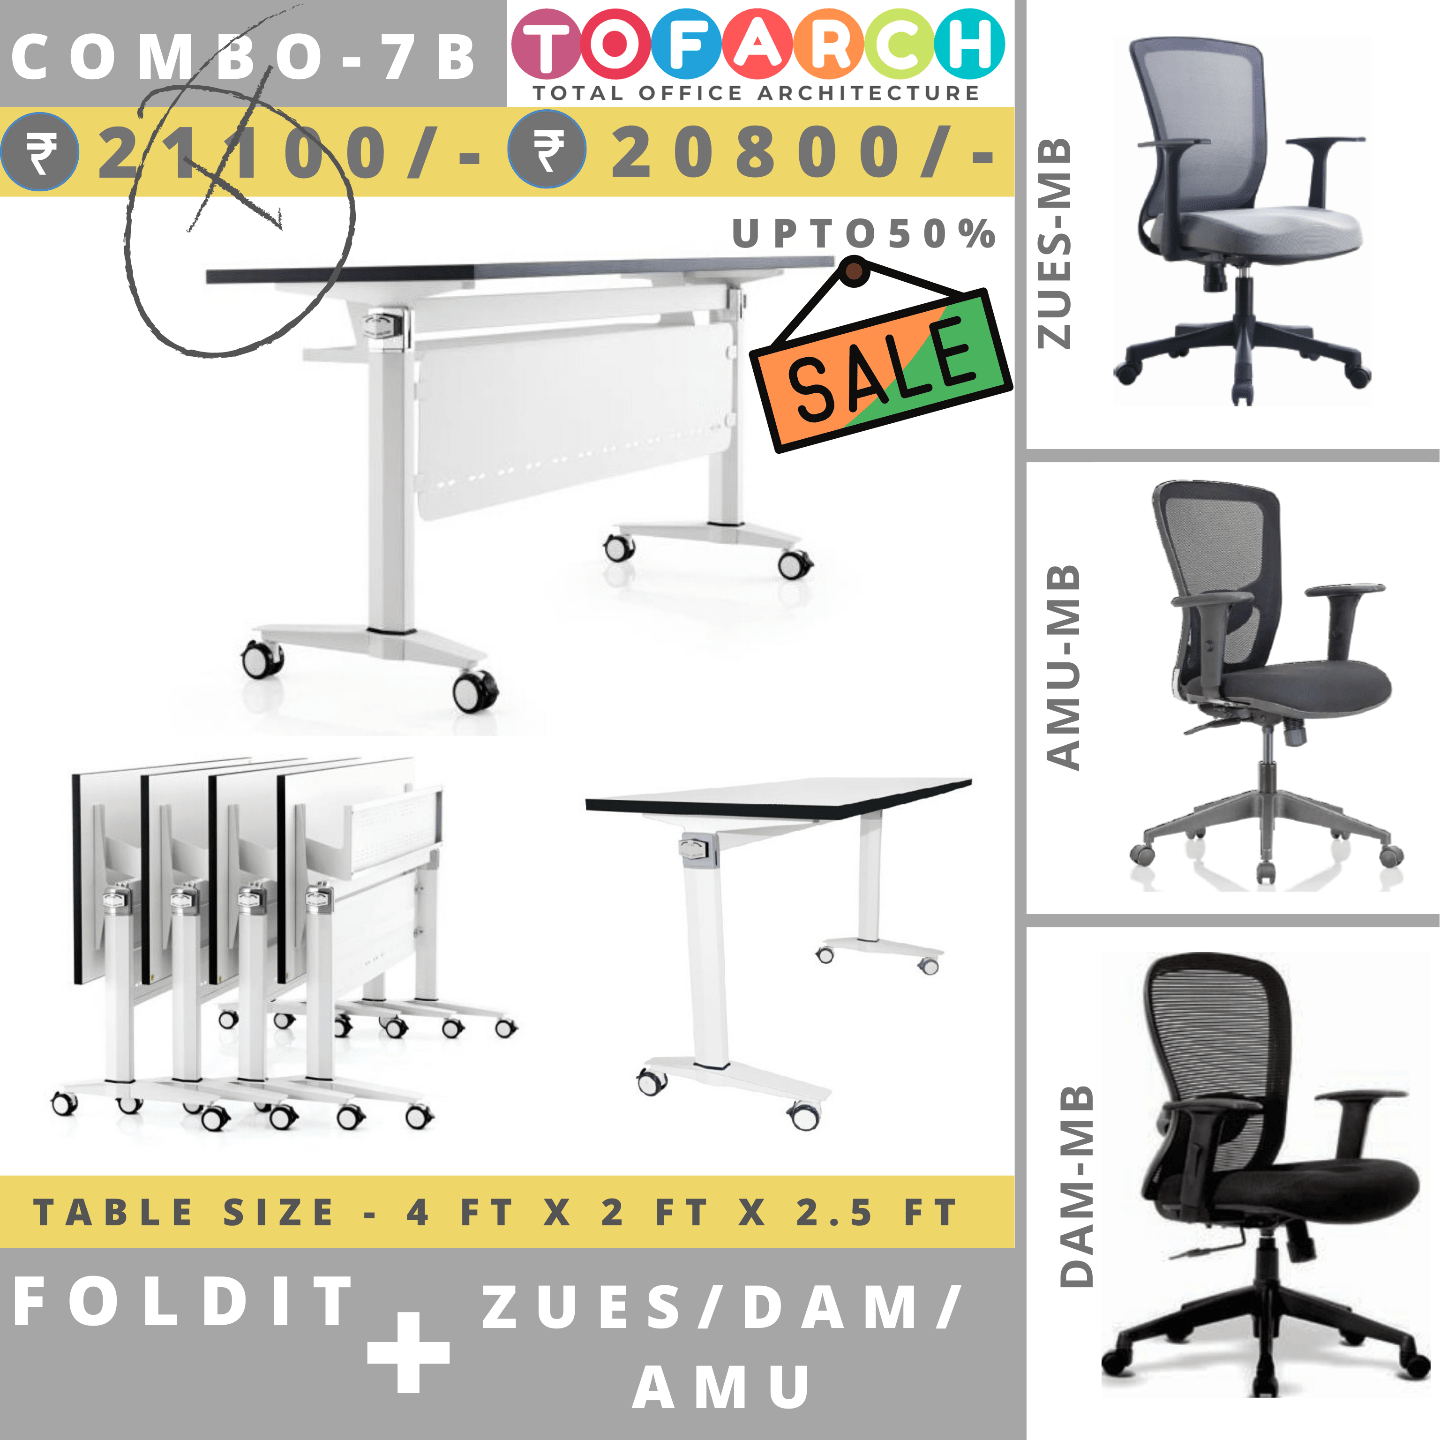 Table Chair Combo - 7B (FOLDIT Table + AMU / DAM / ZUES Chair)